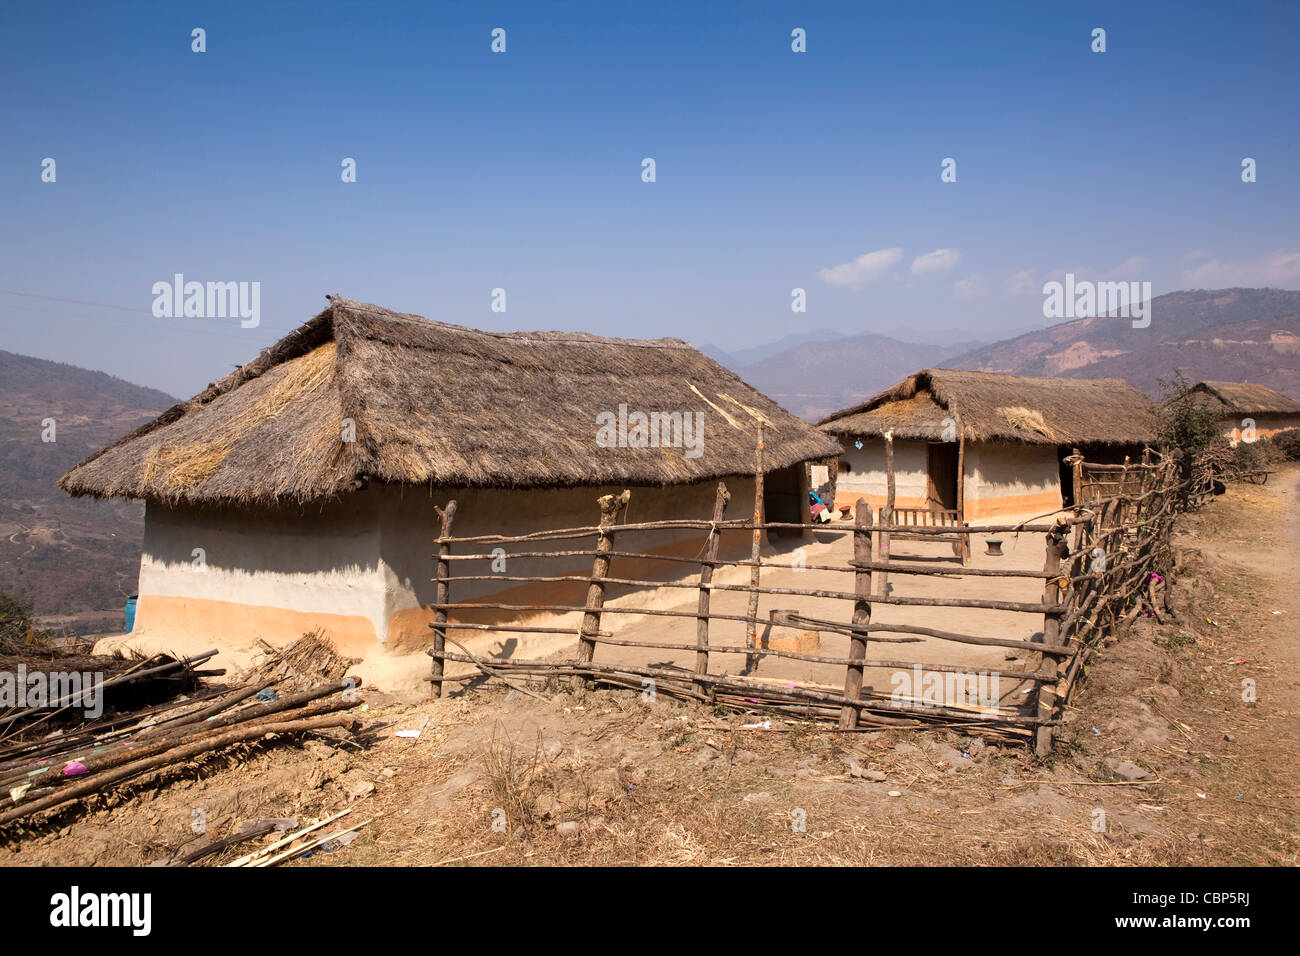 India, Manipur, Lairouching Hills, local wooden built, dung rendered house and compound - Stock Image